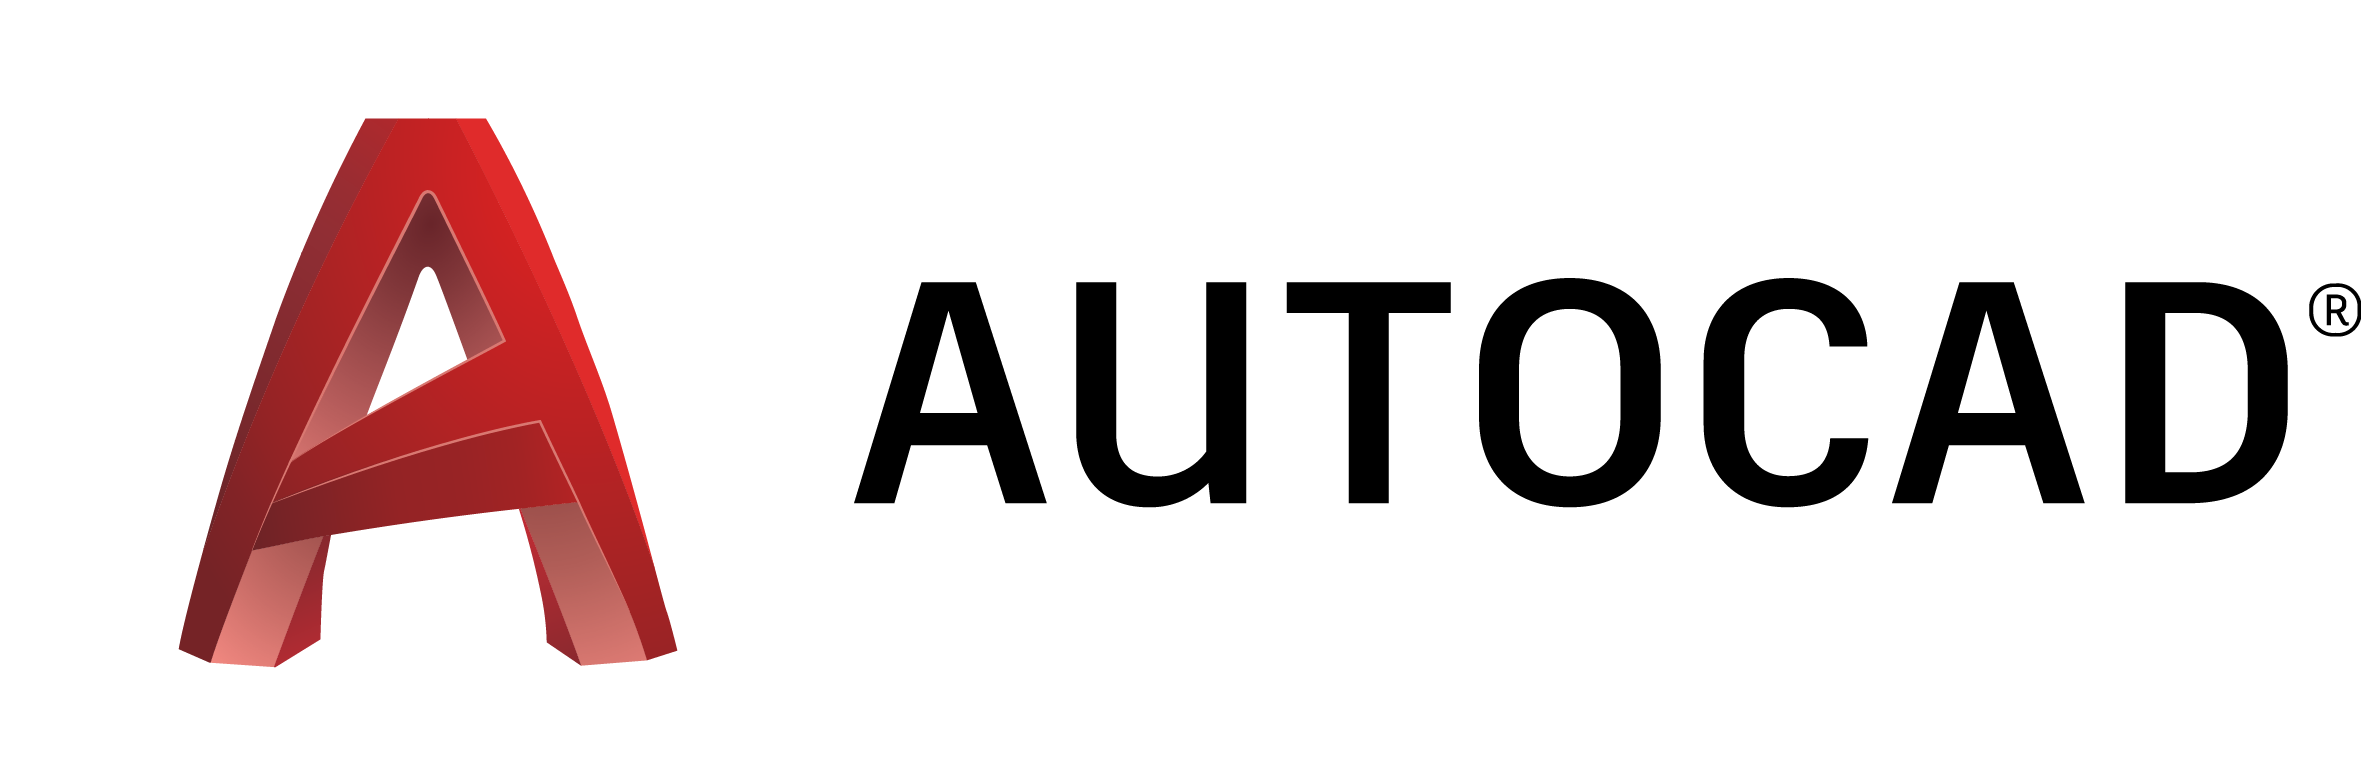 Library Of Autocad 2018 Logo